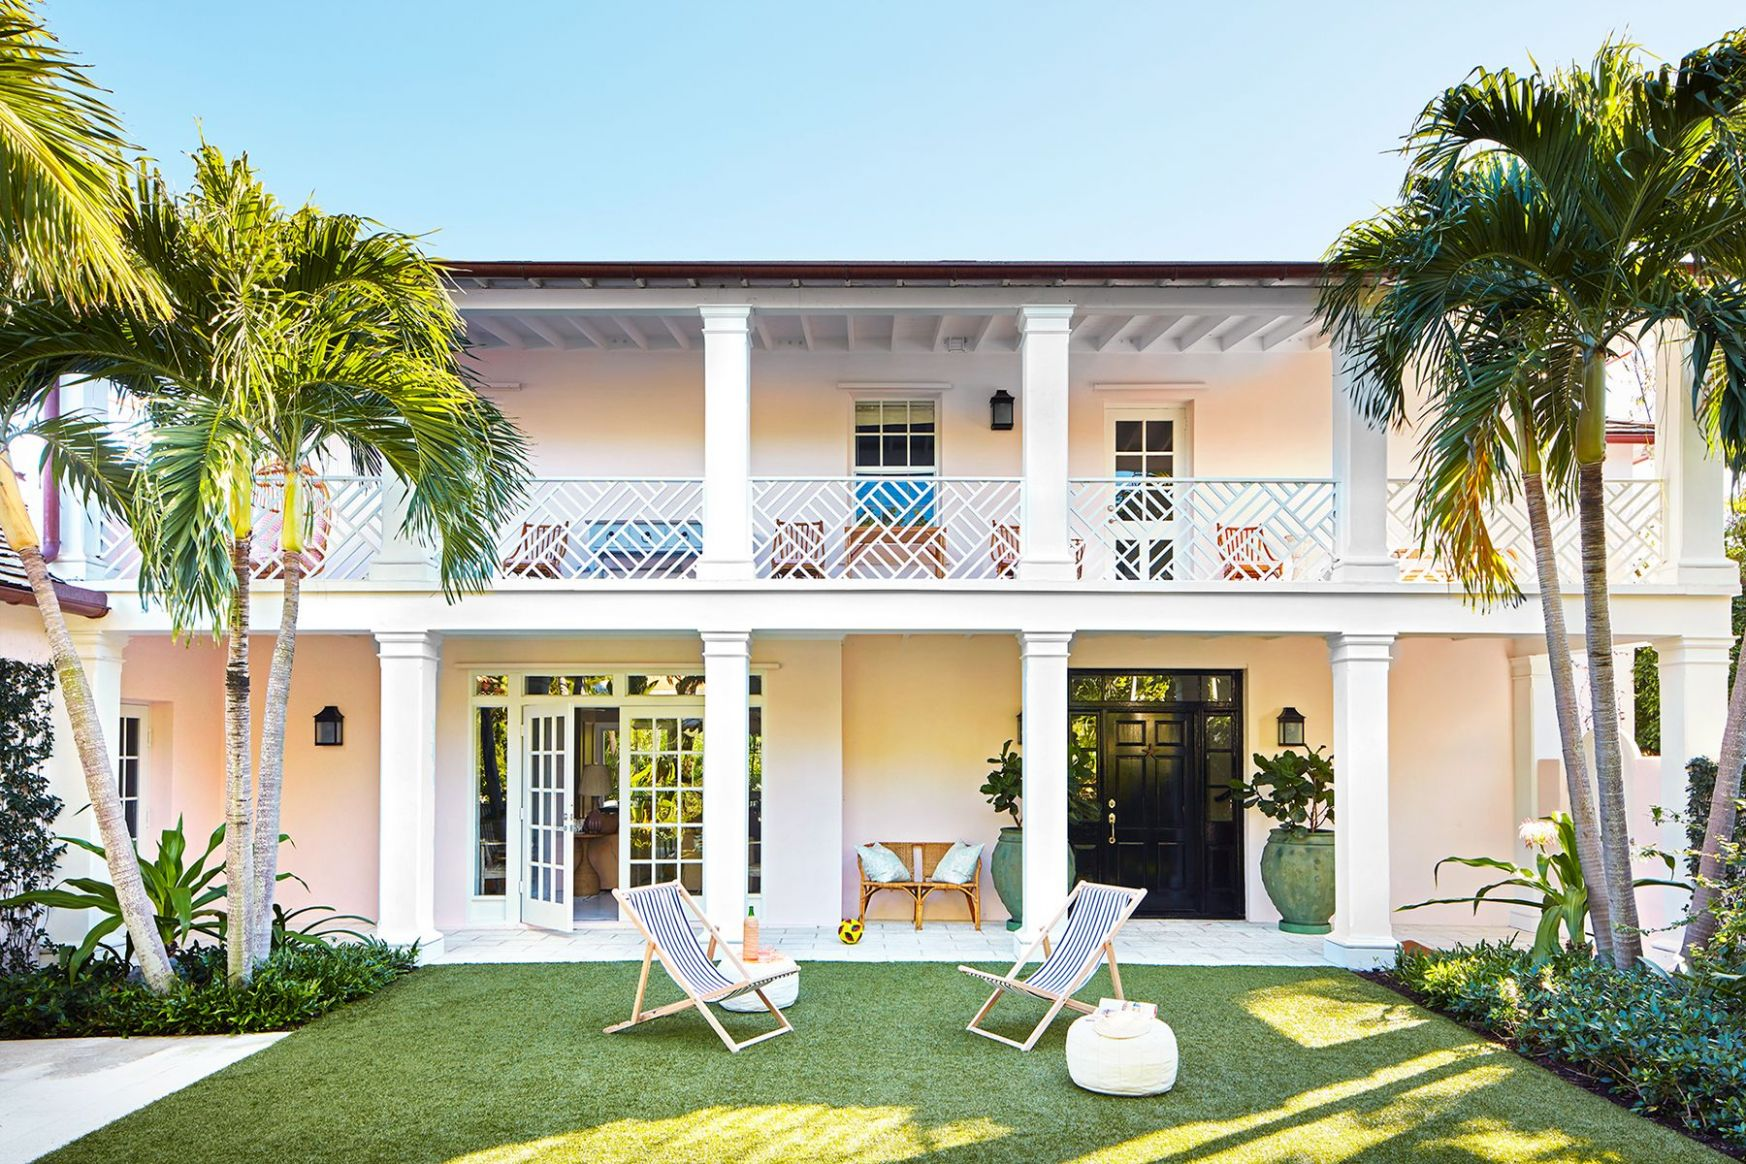 10 Charming Front Porch Ideas - Porch Design and Decorating Tips